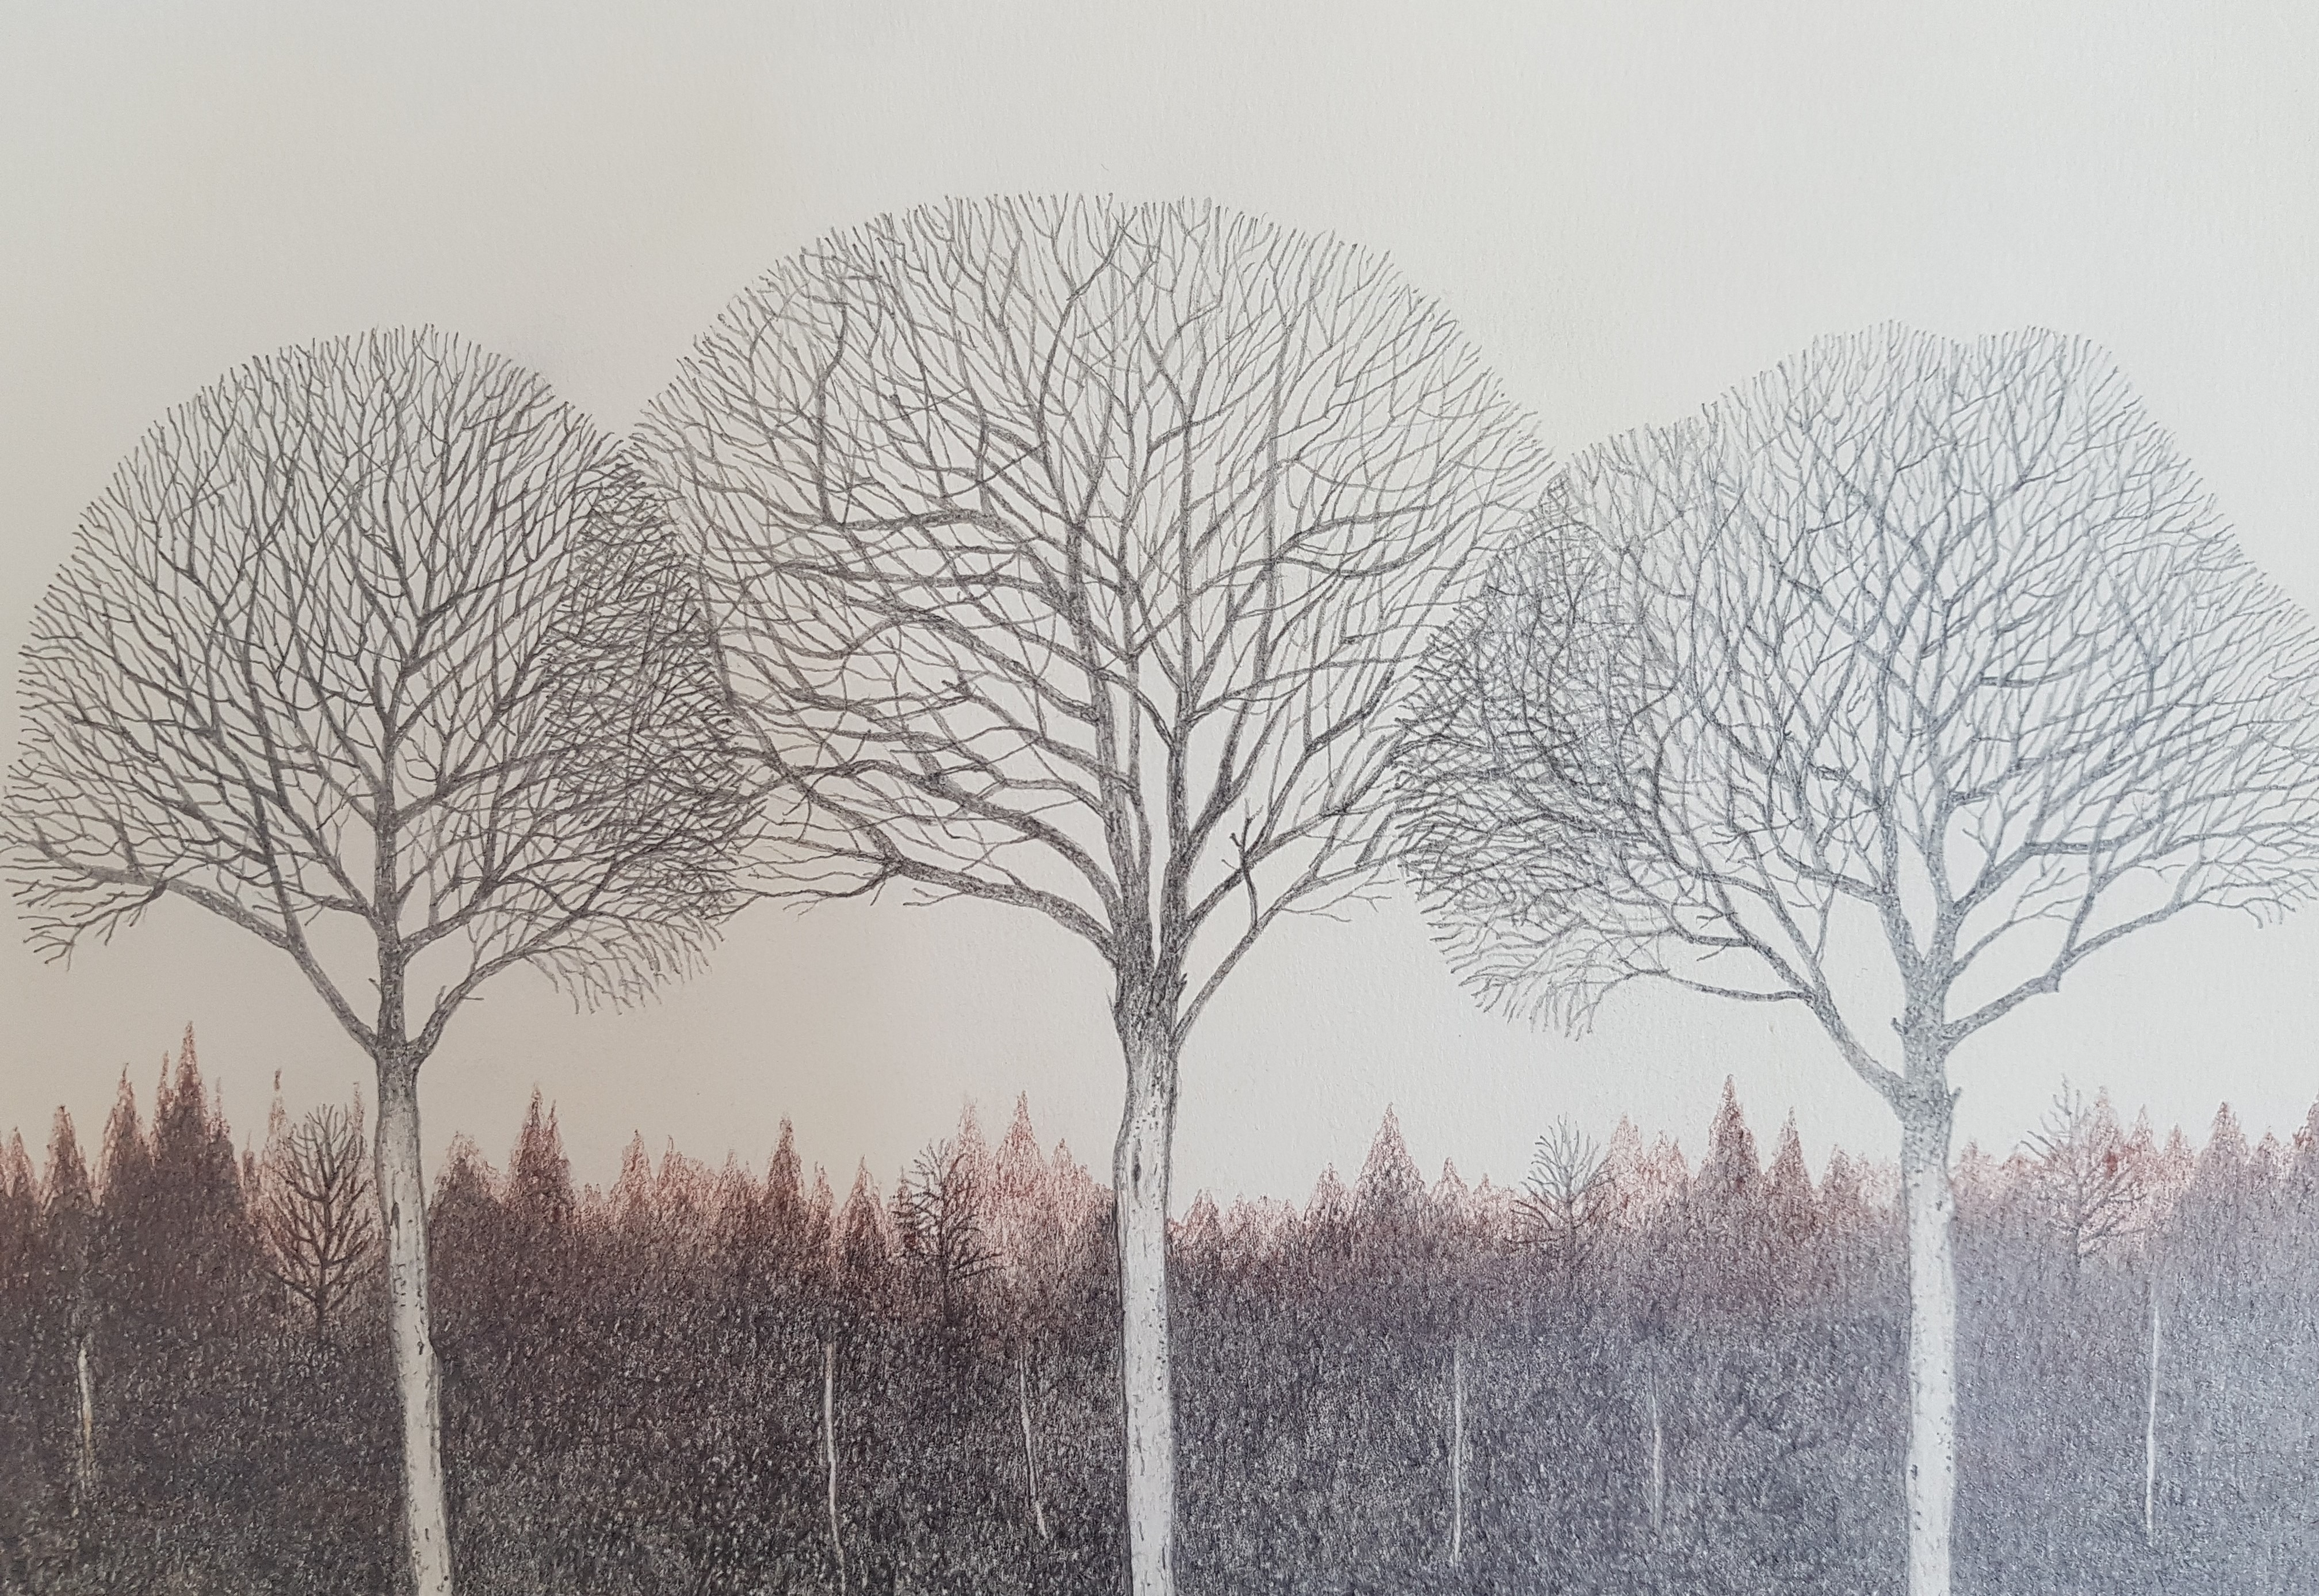 Overlapping trees P12